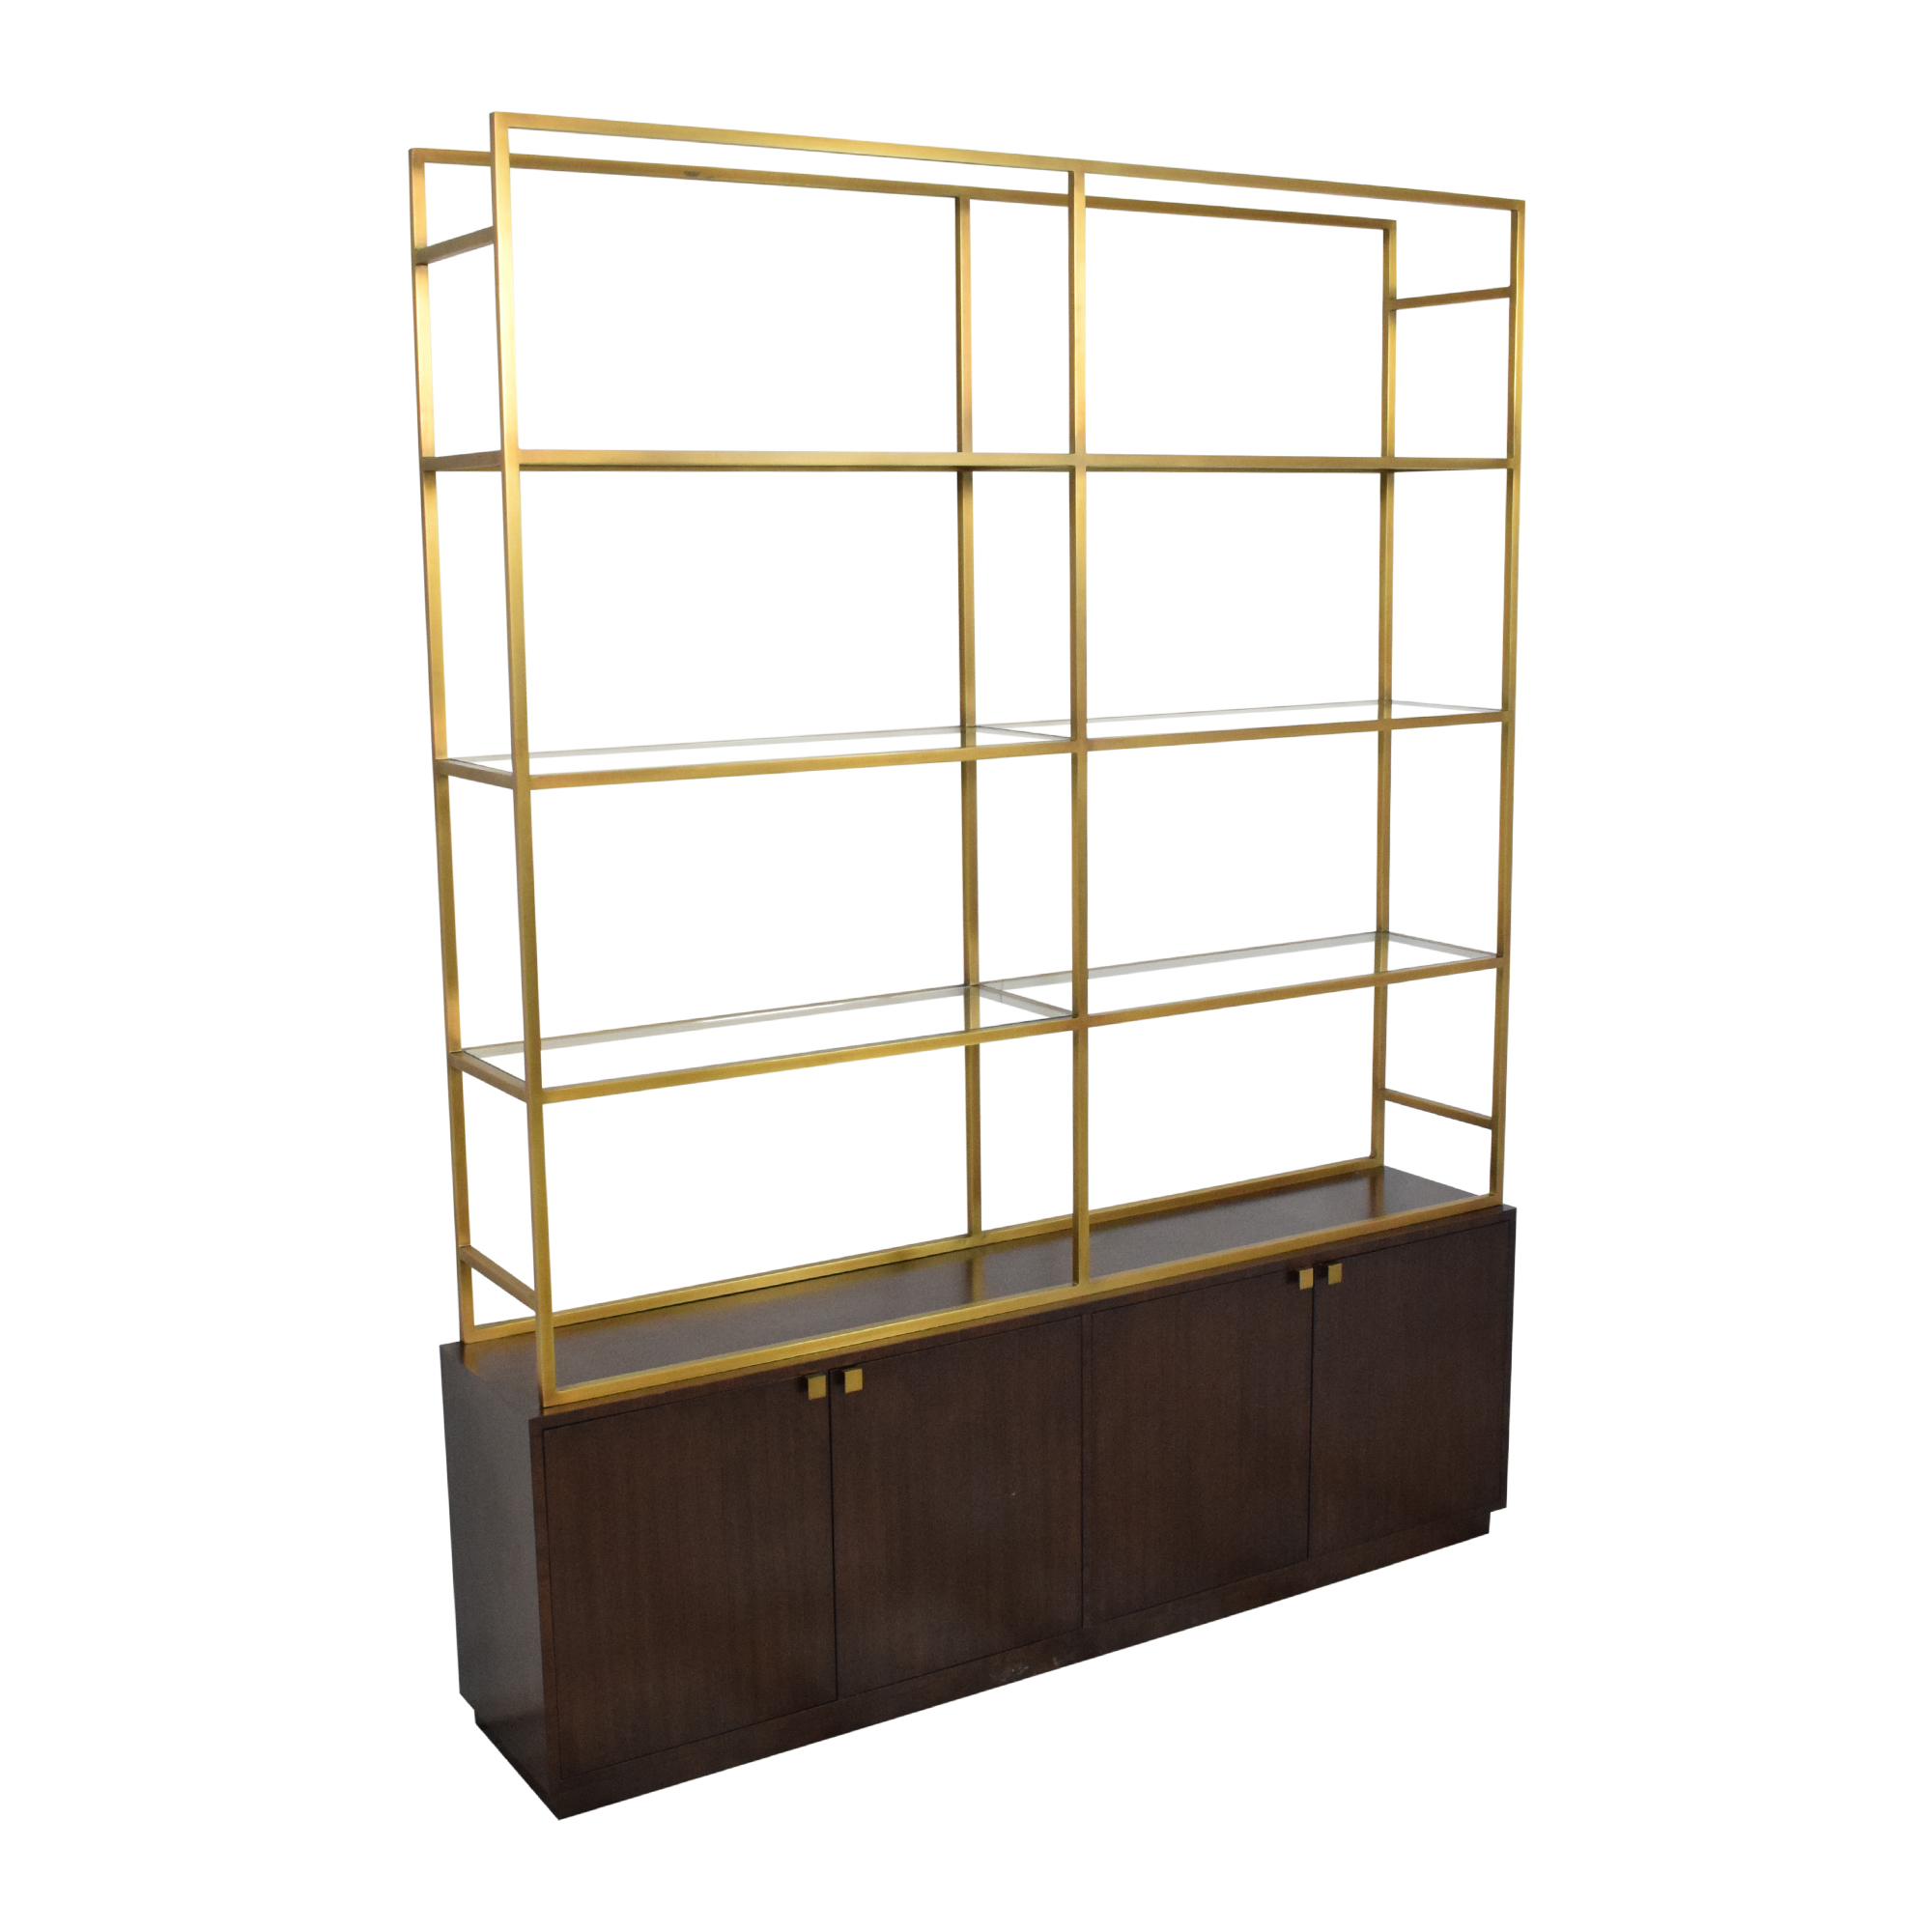 Restoration Hardware Restoration Hardware Sideboard with Etagere Style Bookcase for sale